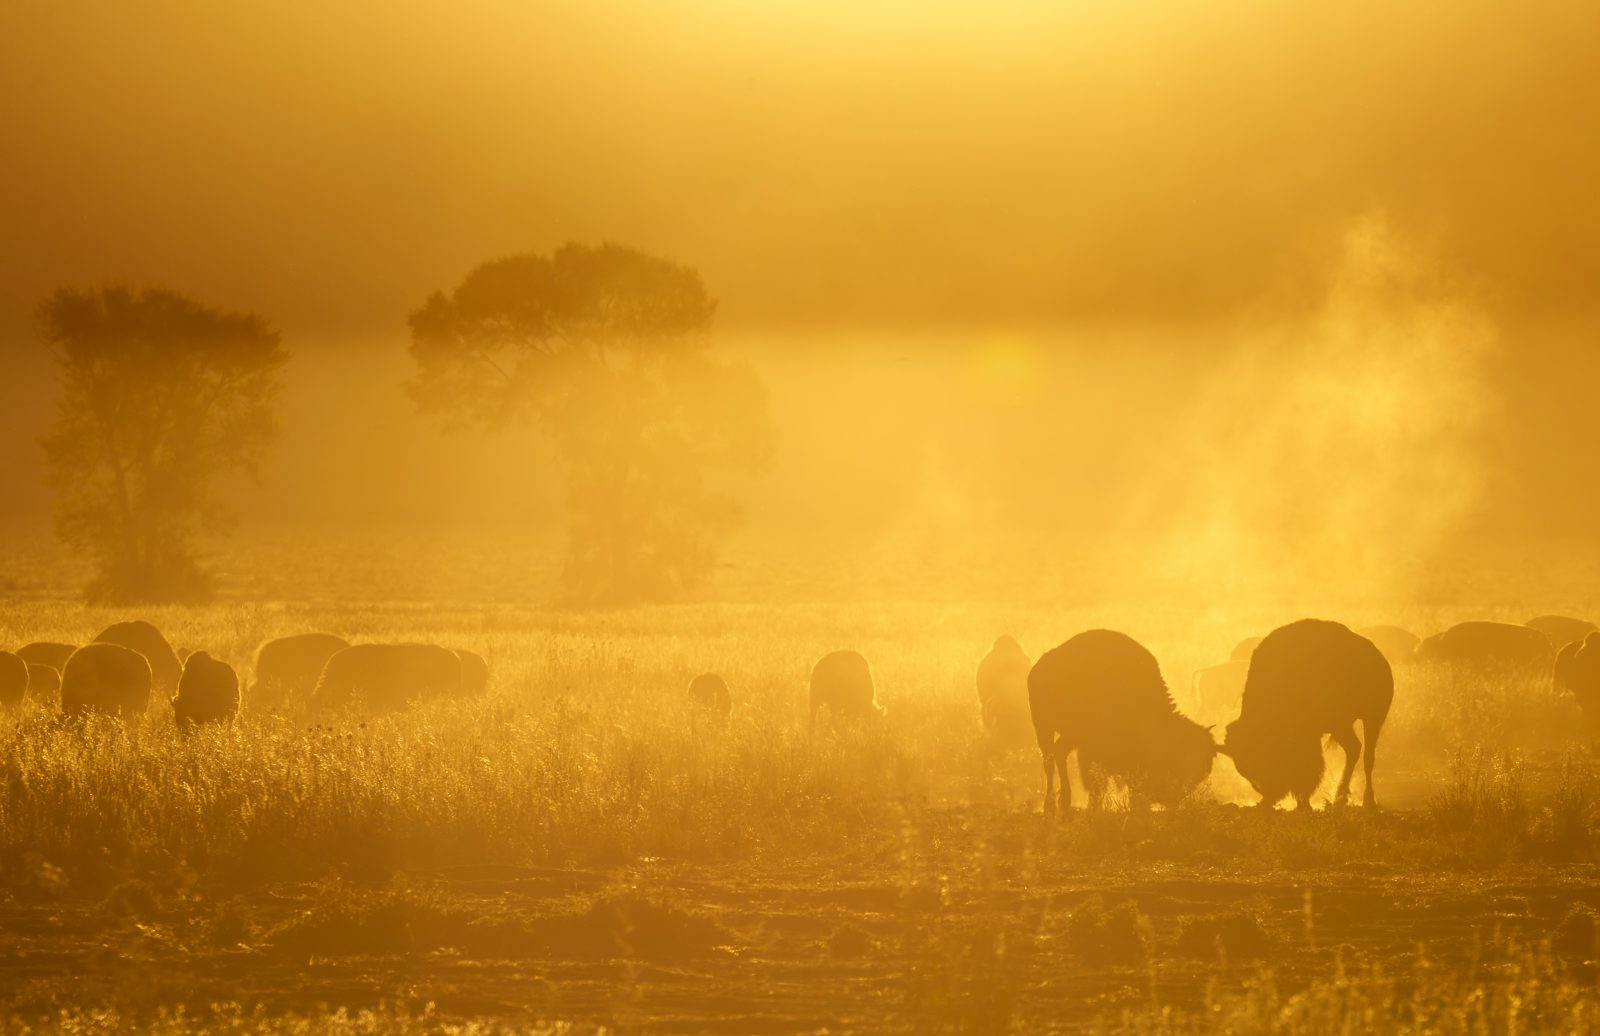 Bison in the Morning Sun